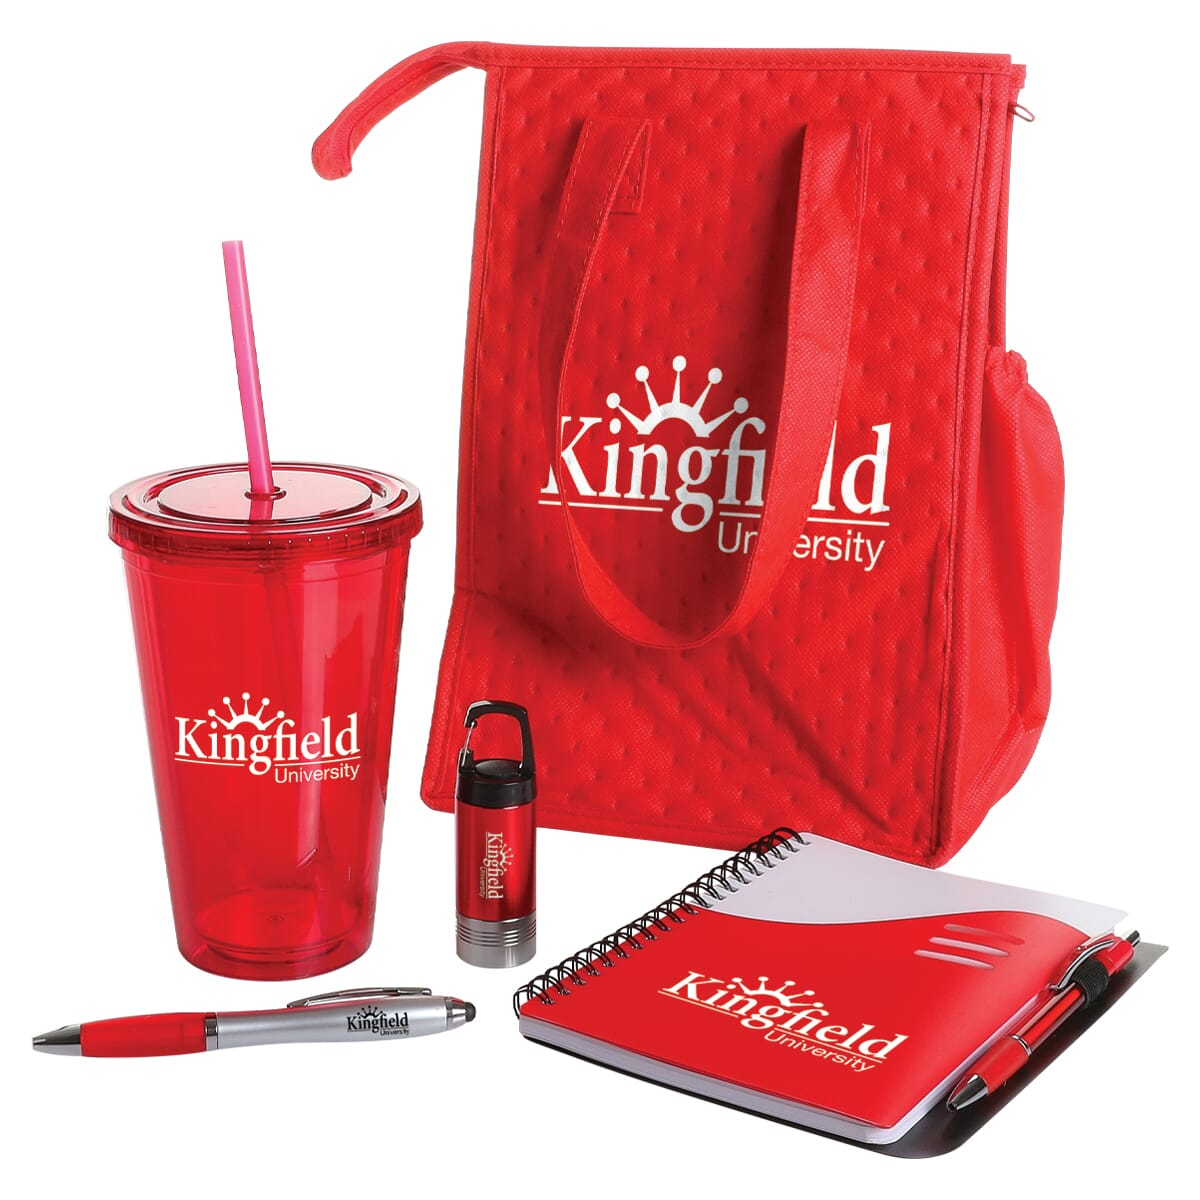 Red employee essentials set with bag, cup, flashlight, pen, and notebook